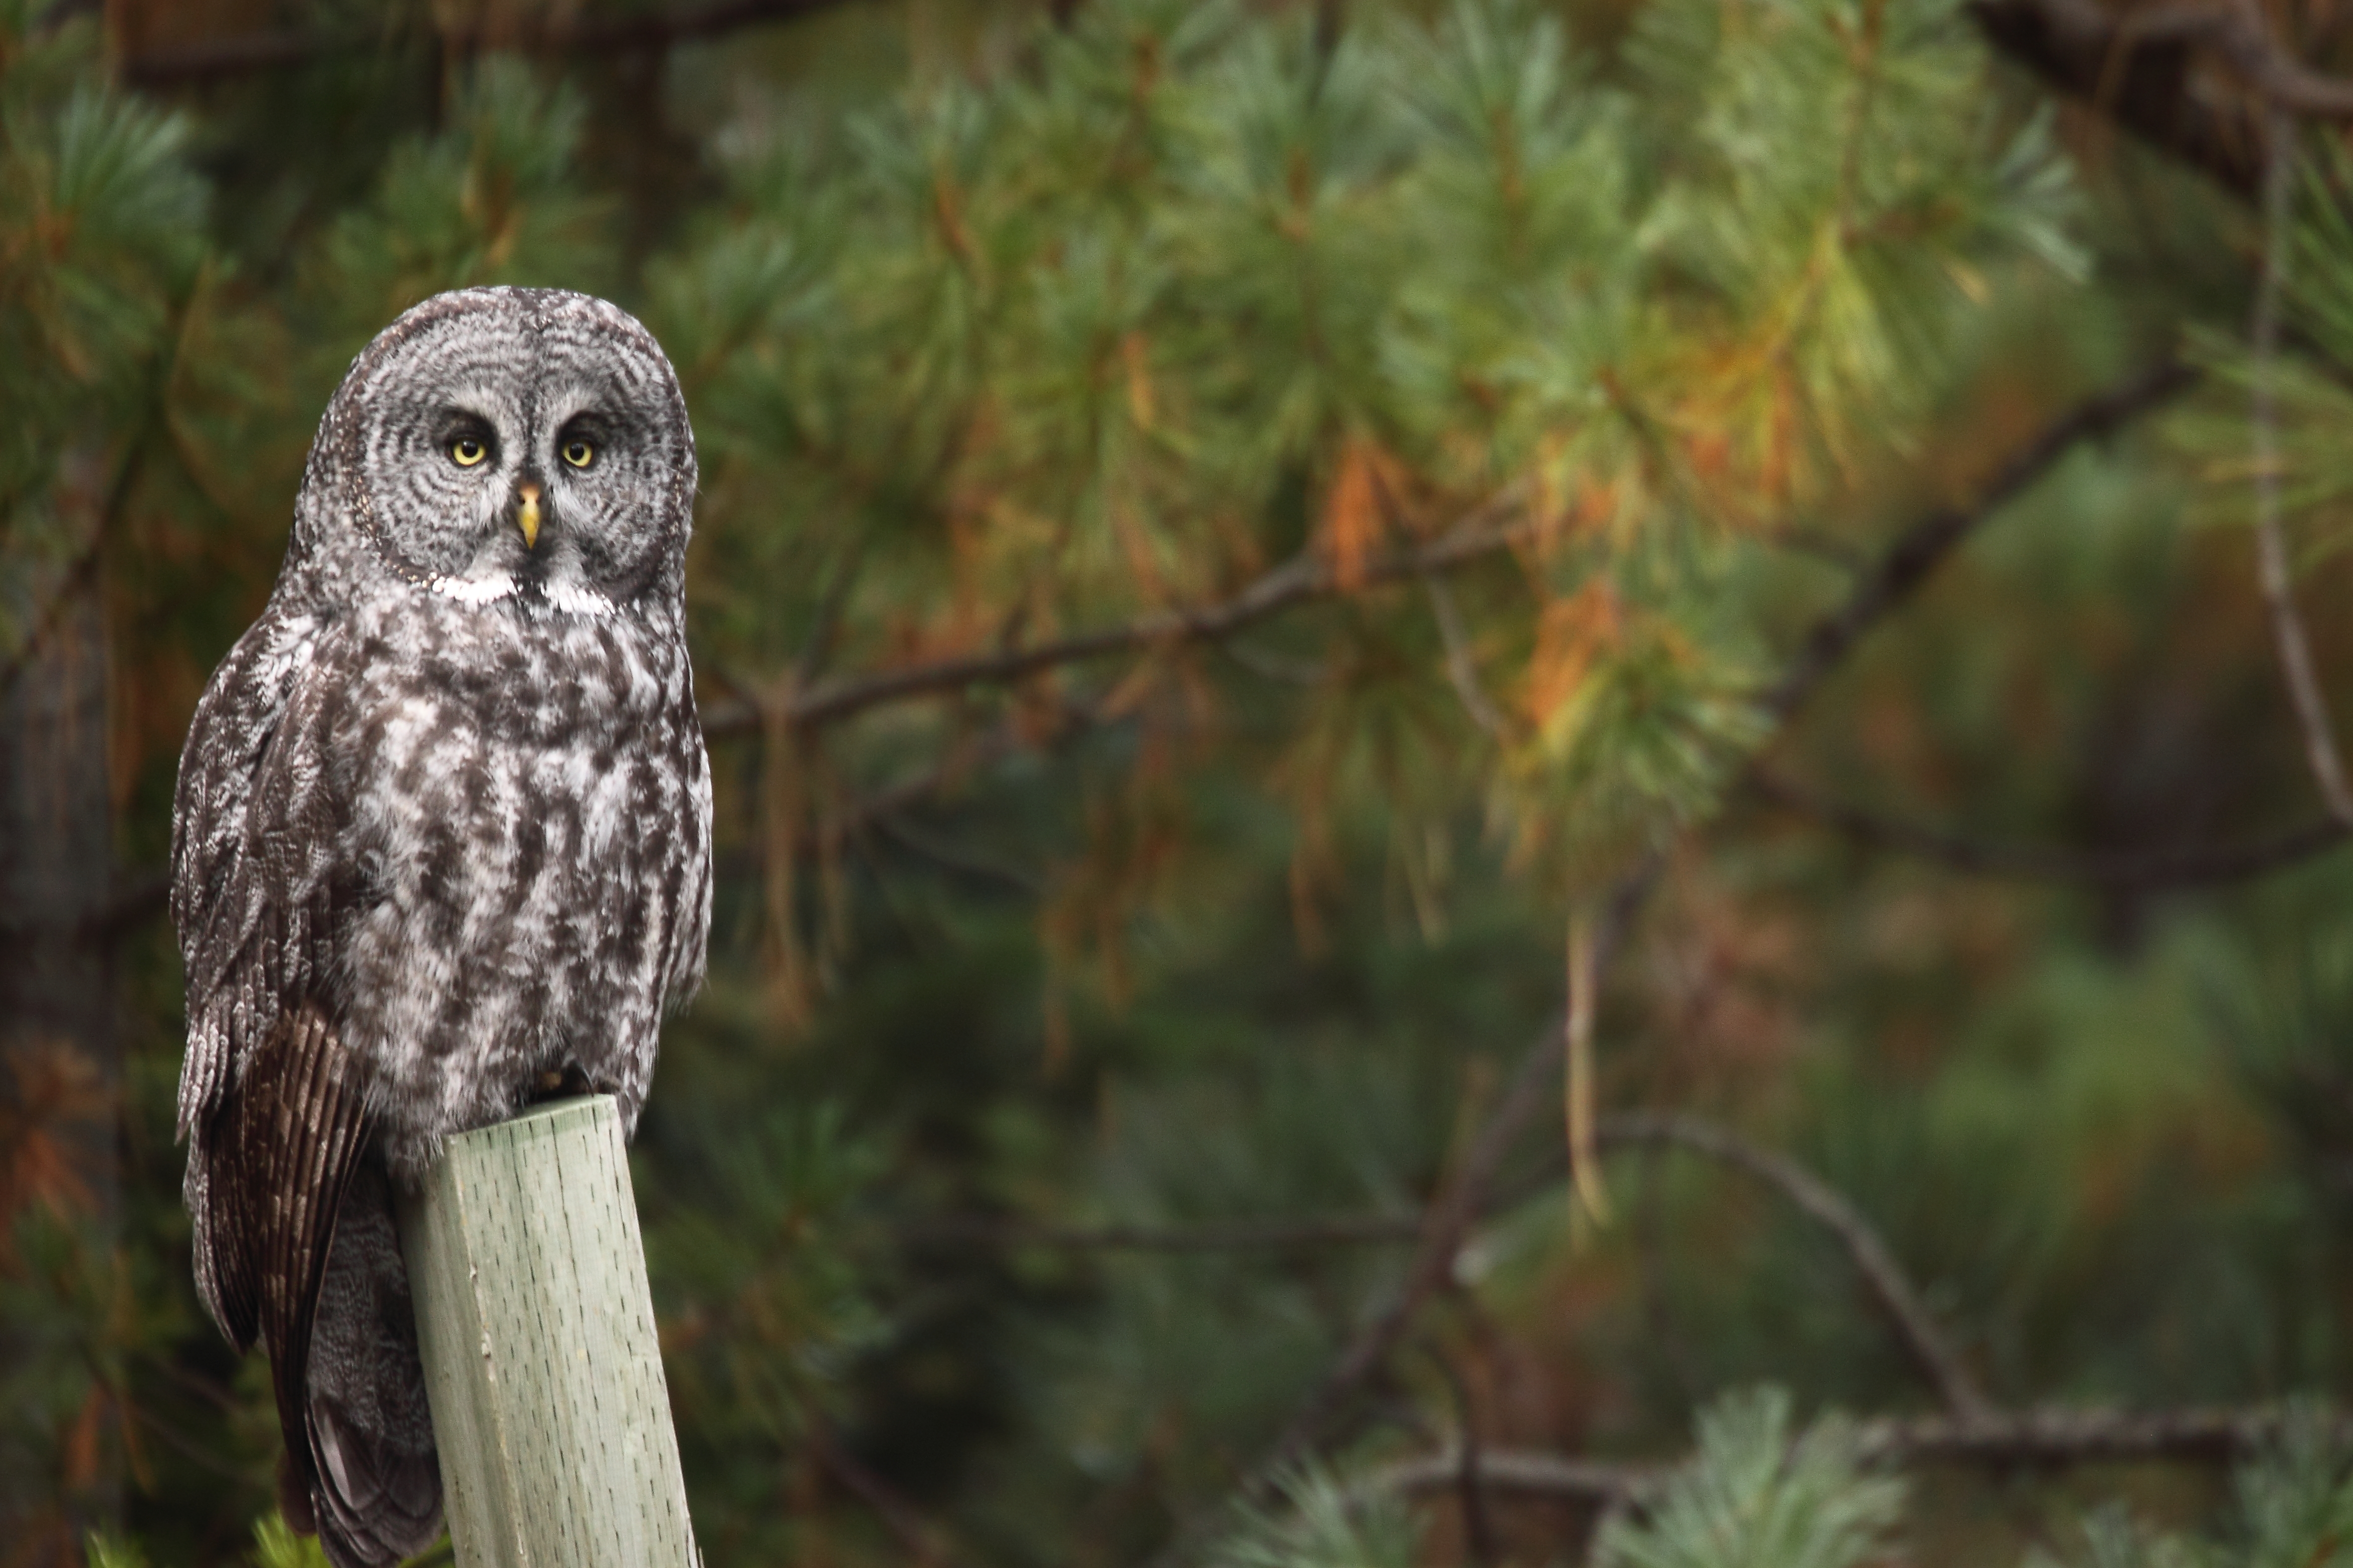 80032 download wallpaper Animals, Owl, Bird, Predator, Wood, Tree, Sight, Opinion screensavers and pictures for free